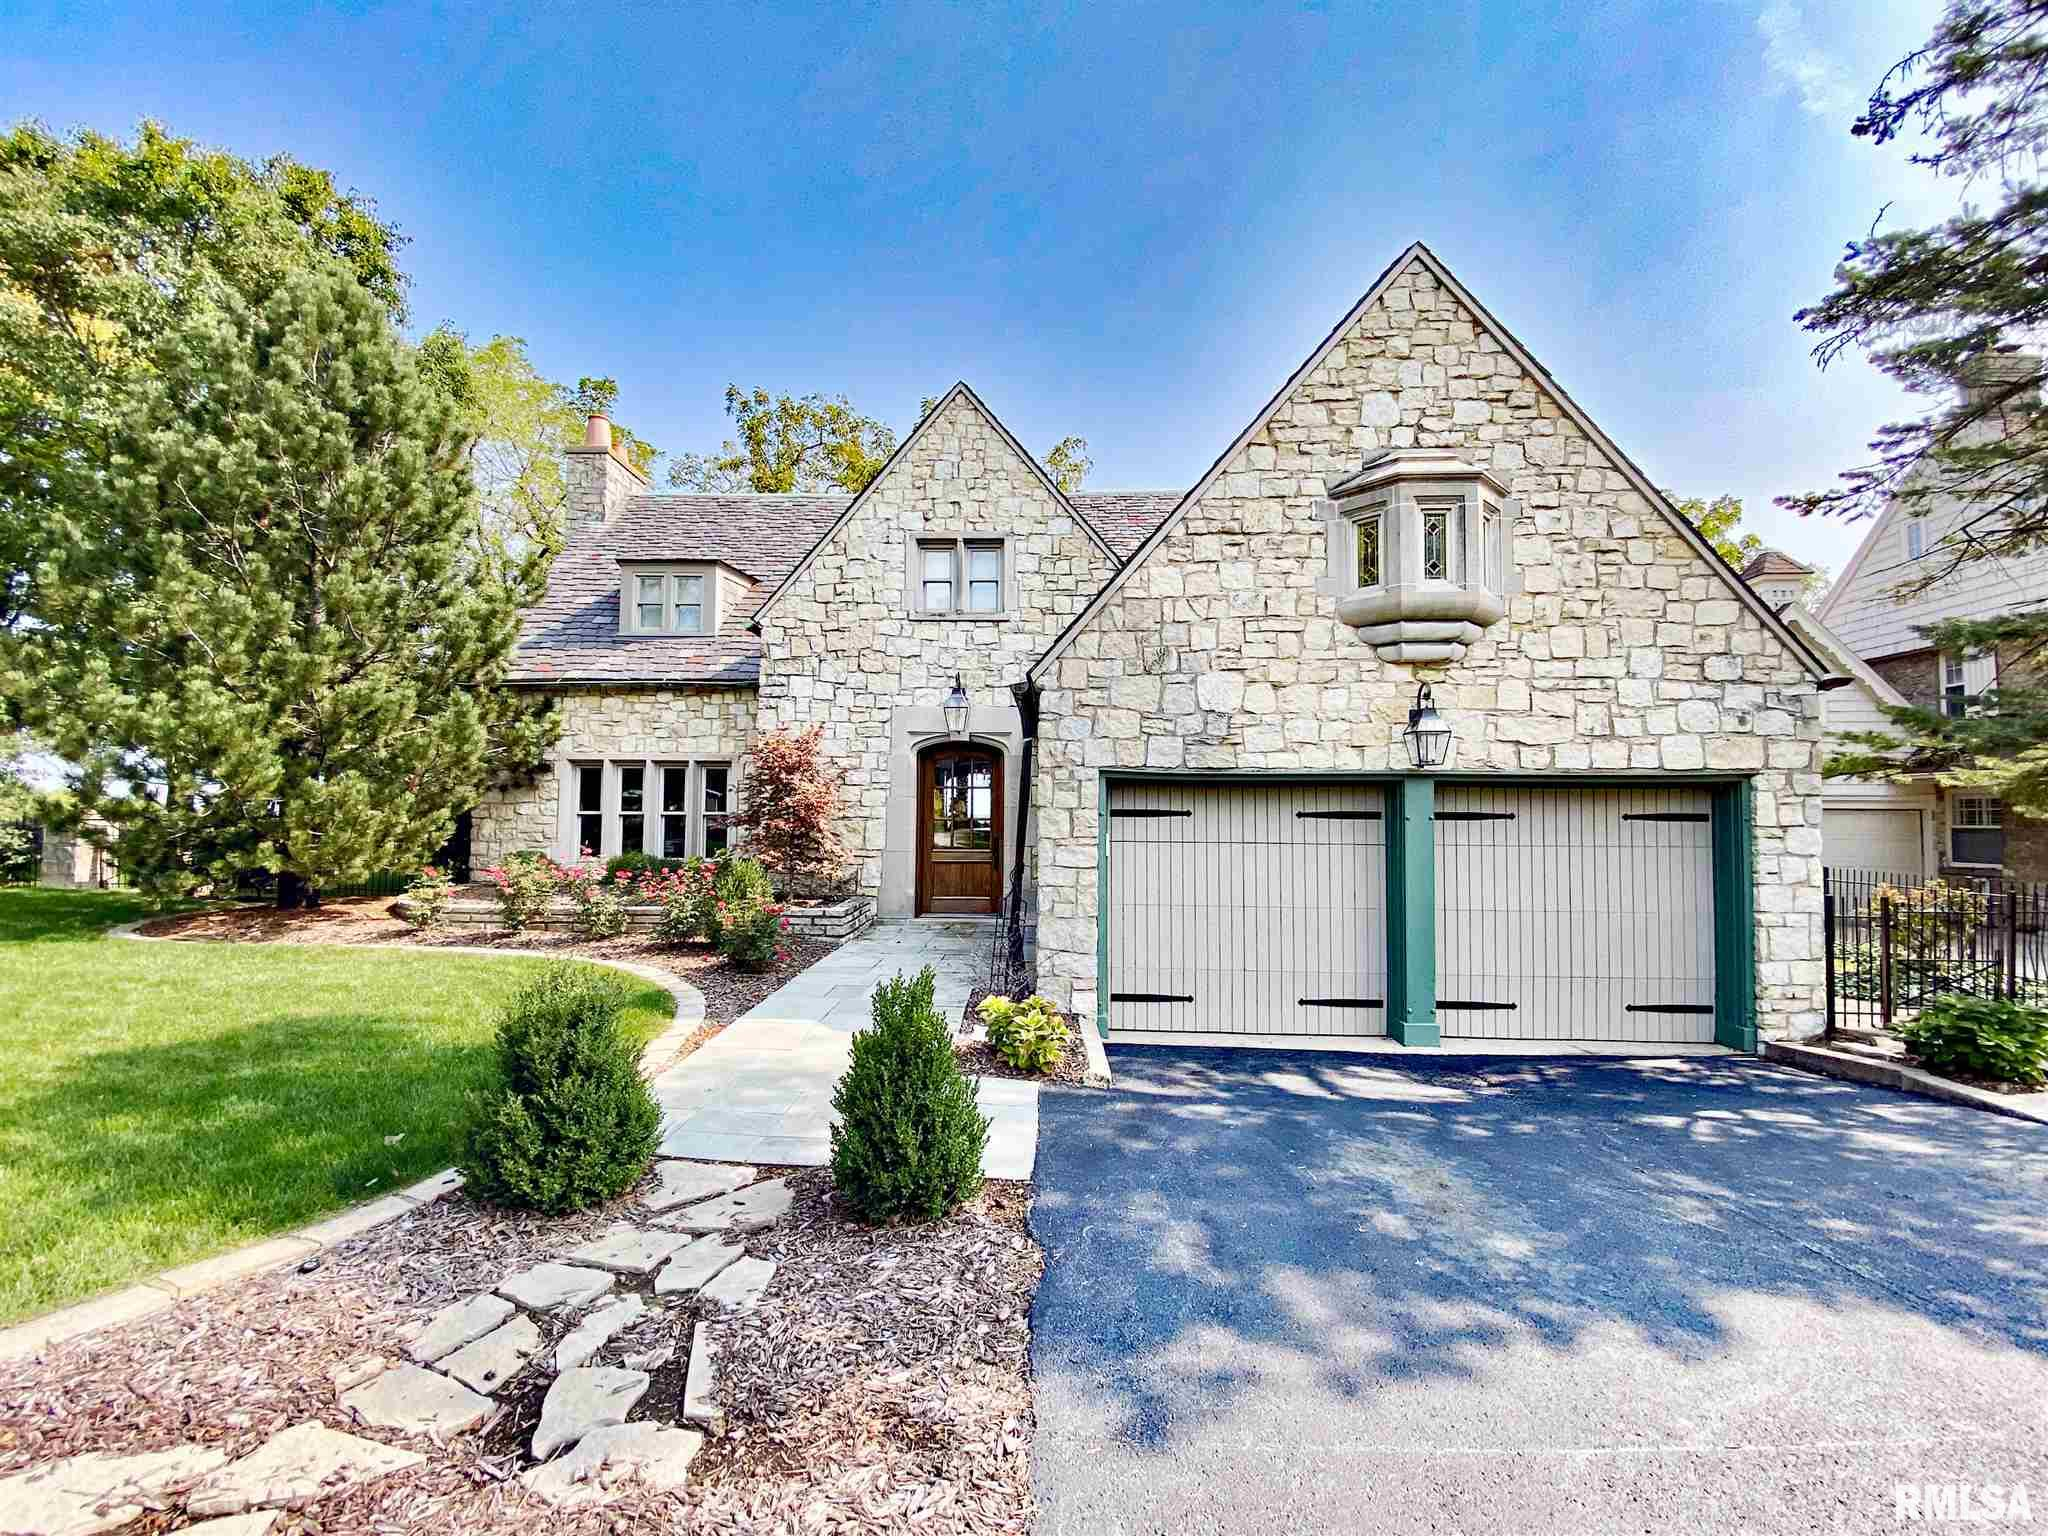 5020 N PROSPECT Property Photo - Peoria Heights, IL real estate listing